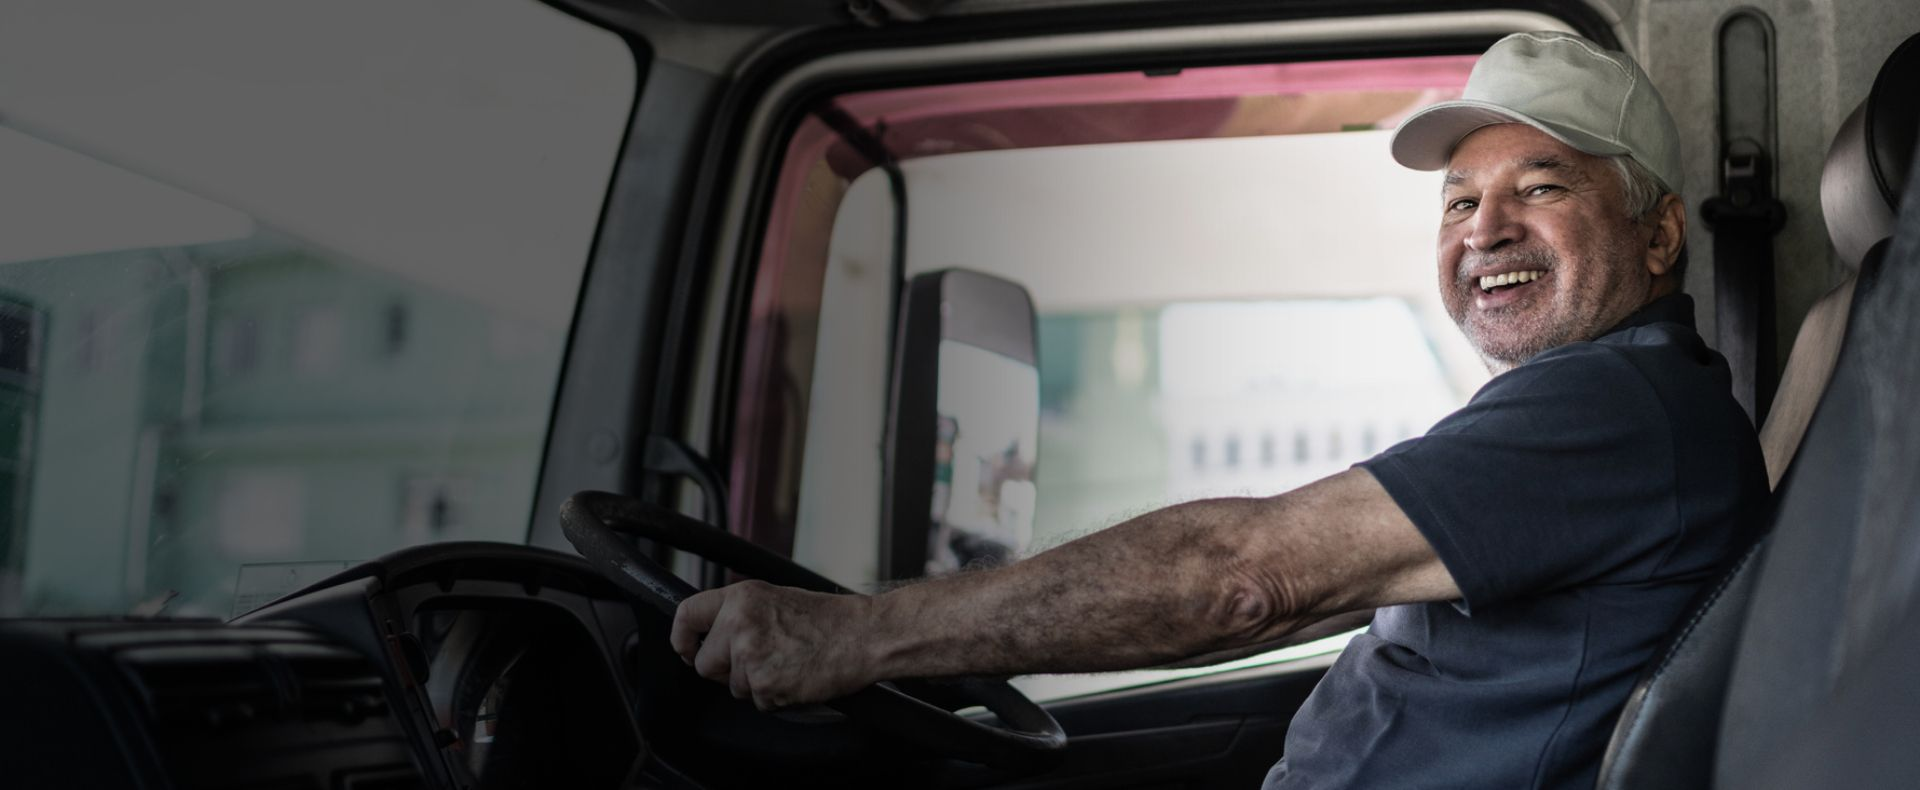 Man sitting behind wheel of truck, commercial driver